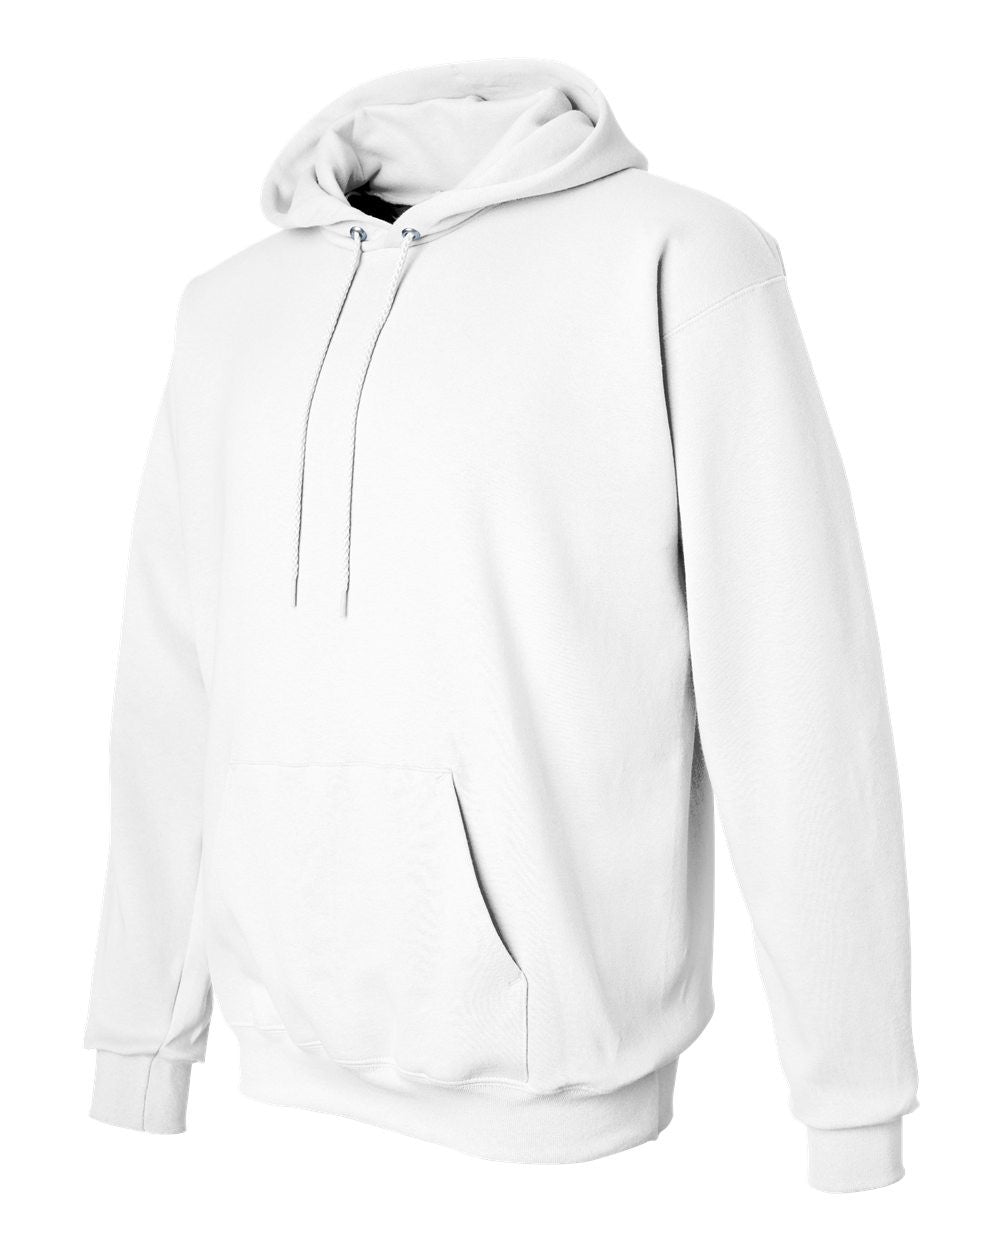 Heavyweight Cotton Hooded Sweatshirt by Hanes - Discountedrack.com